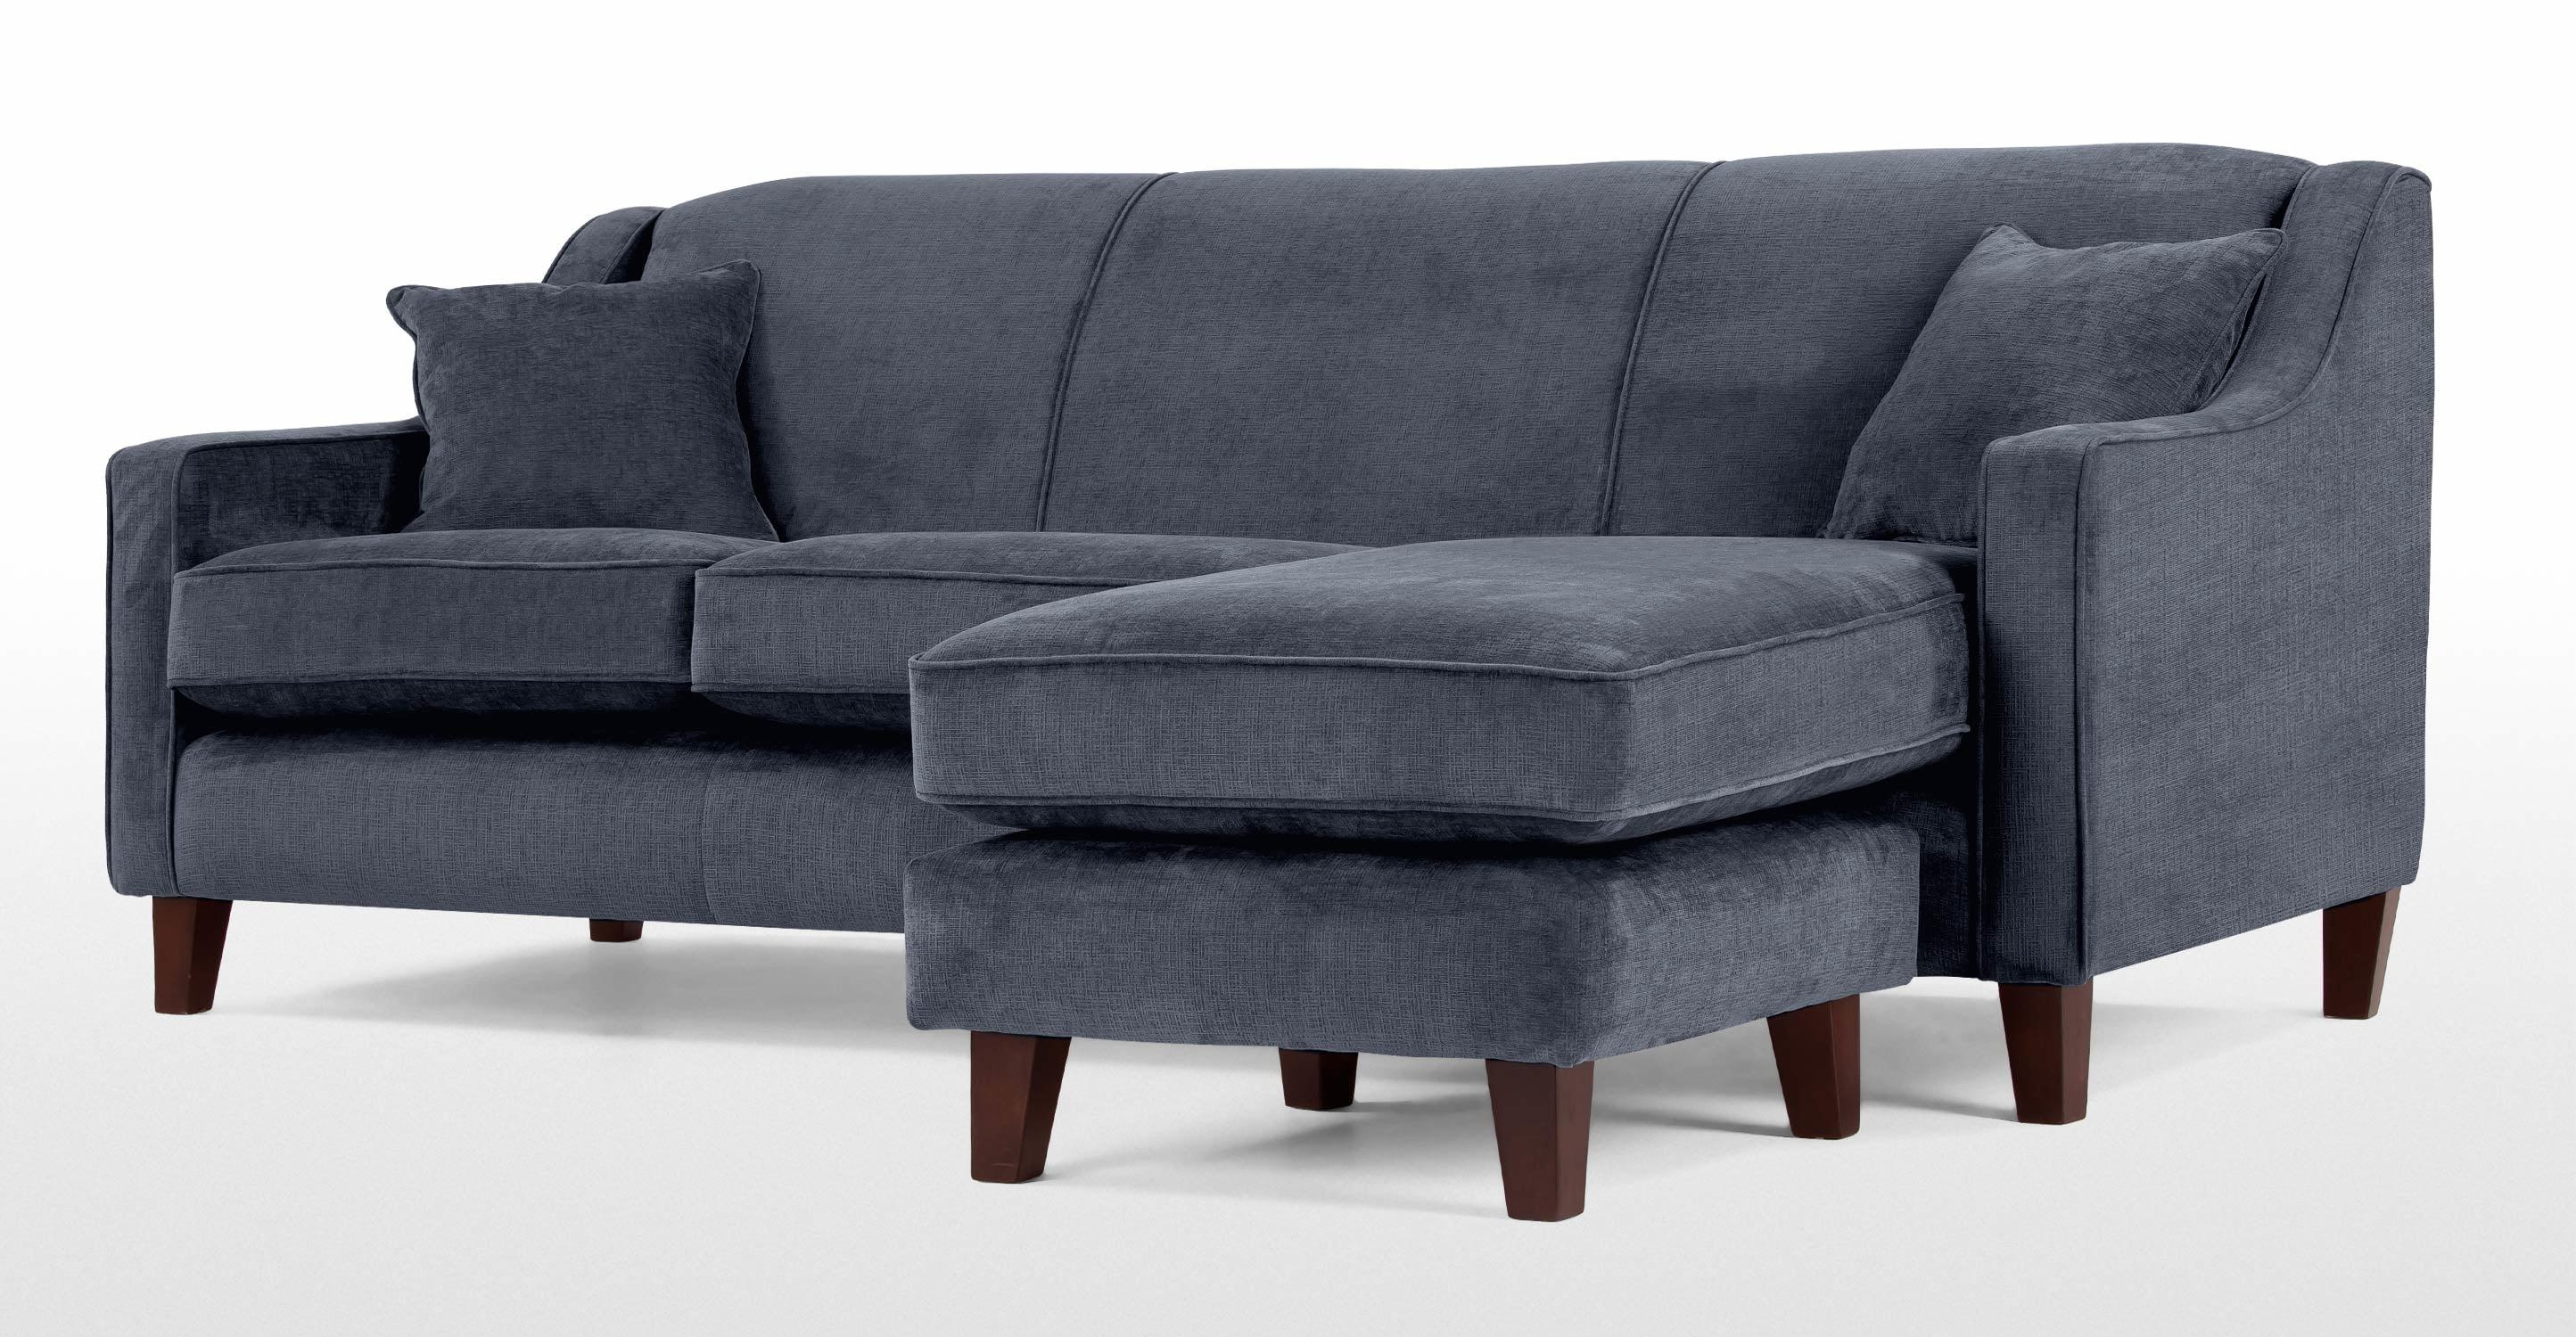 Halston Large Corner Sofa In Midnight Blue | Made For Midnight Blue Sofas (Image 13 of 20)